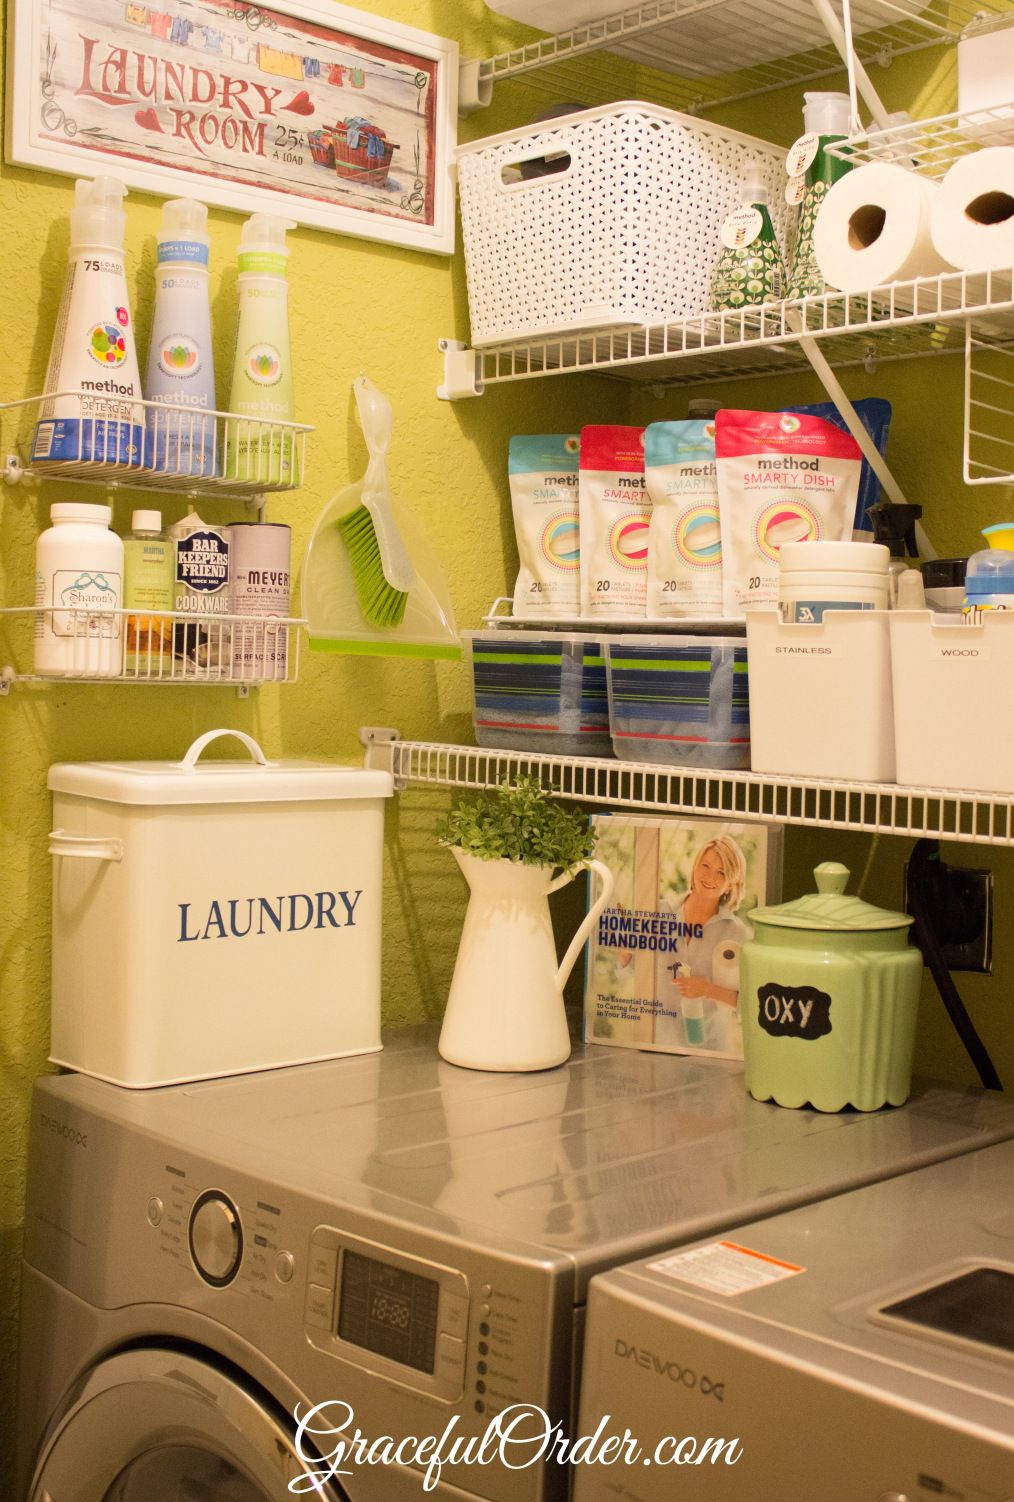 Laundry Room Organization - Graceful Order baskets on wall for ...